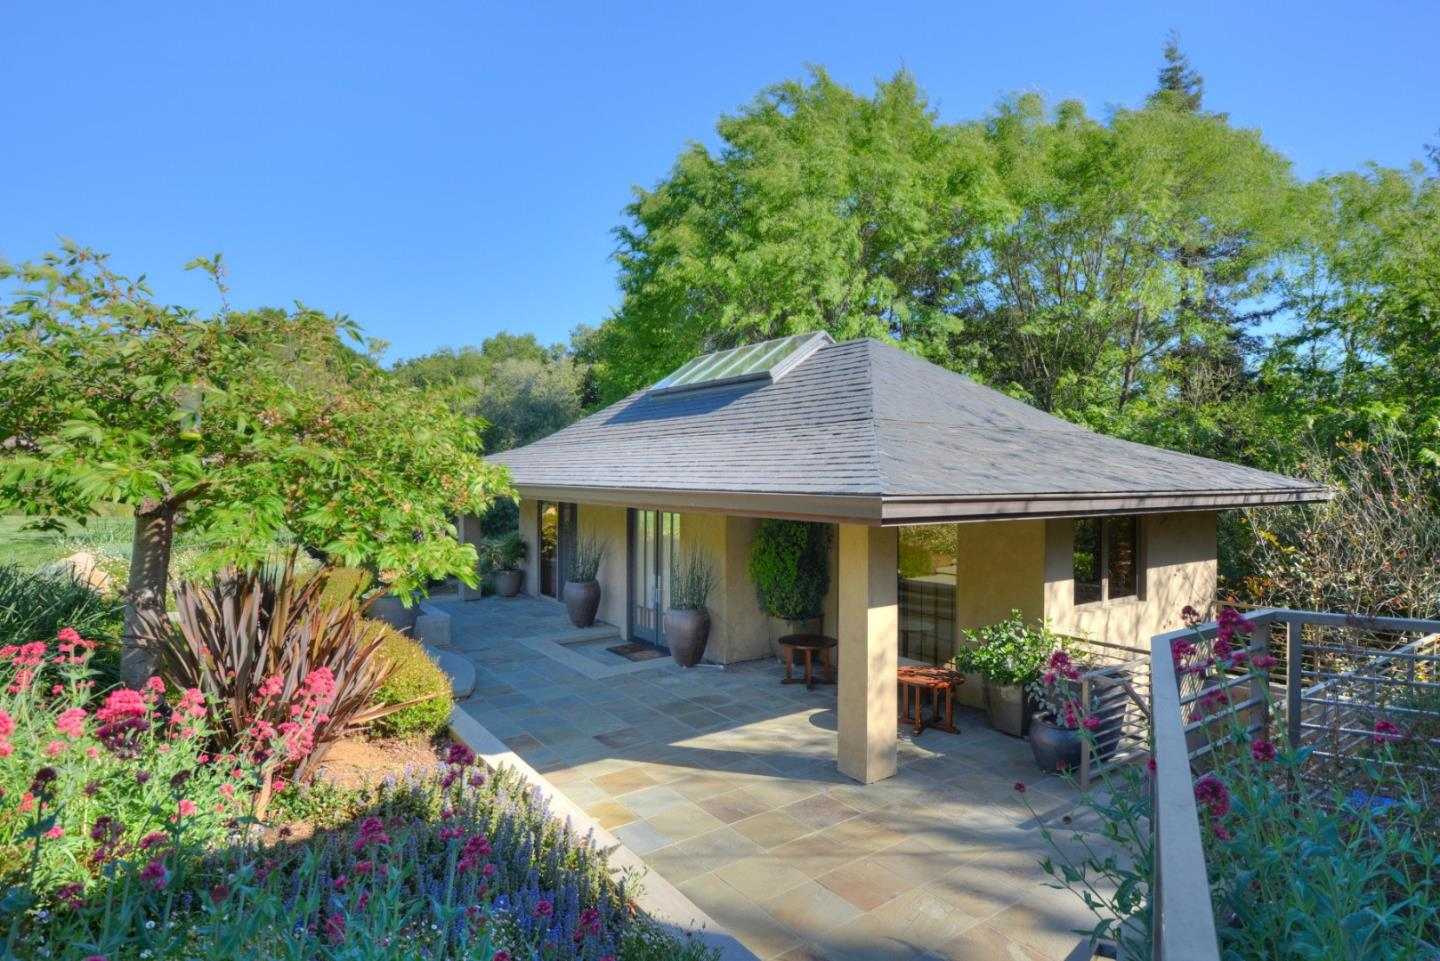 26140 Rancho Manuella LN, LOS ALTOS HILLS, California 94022, 5 Bedrooms Bedrooms, ,6 BathroomsBathrooms,Residential,For Sale,26140 Rancho Manuella LN,ML81818627